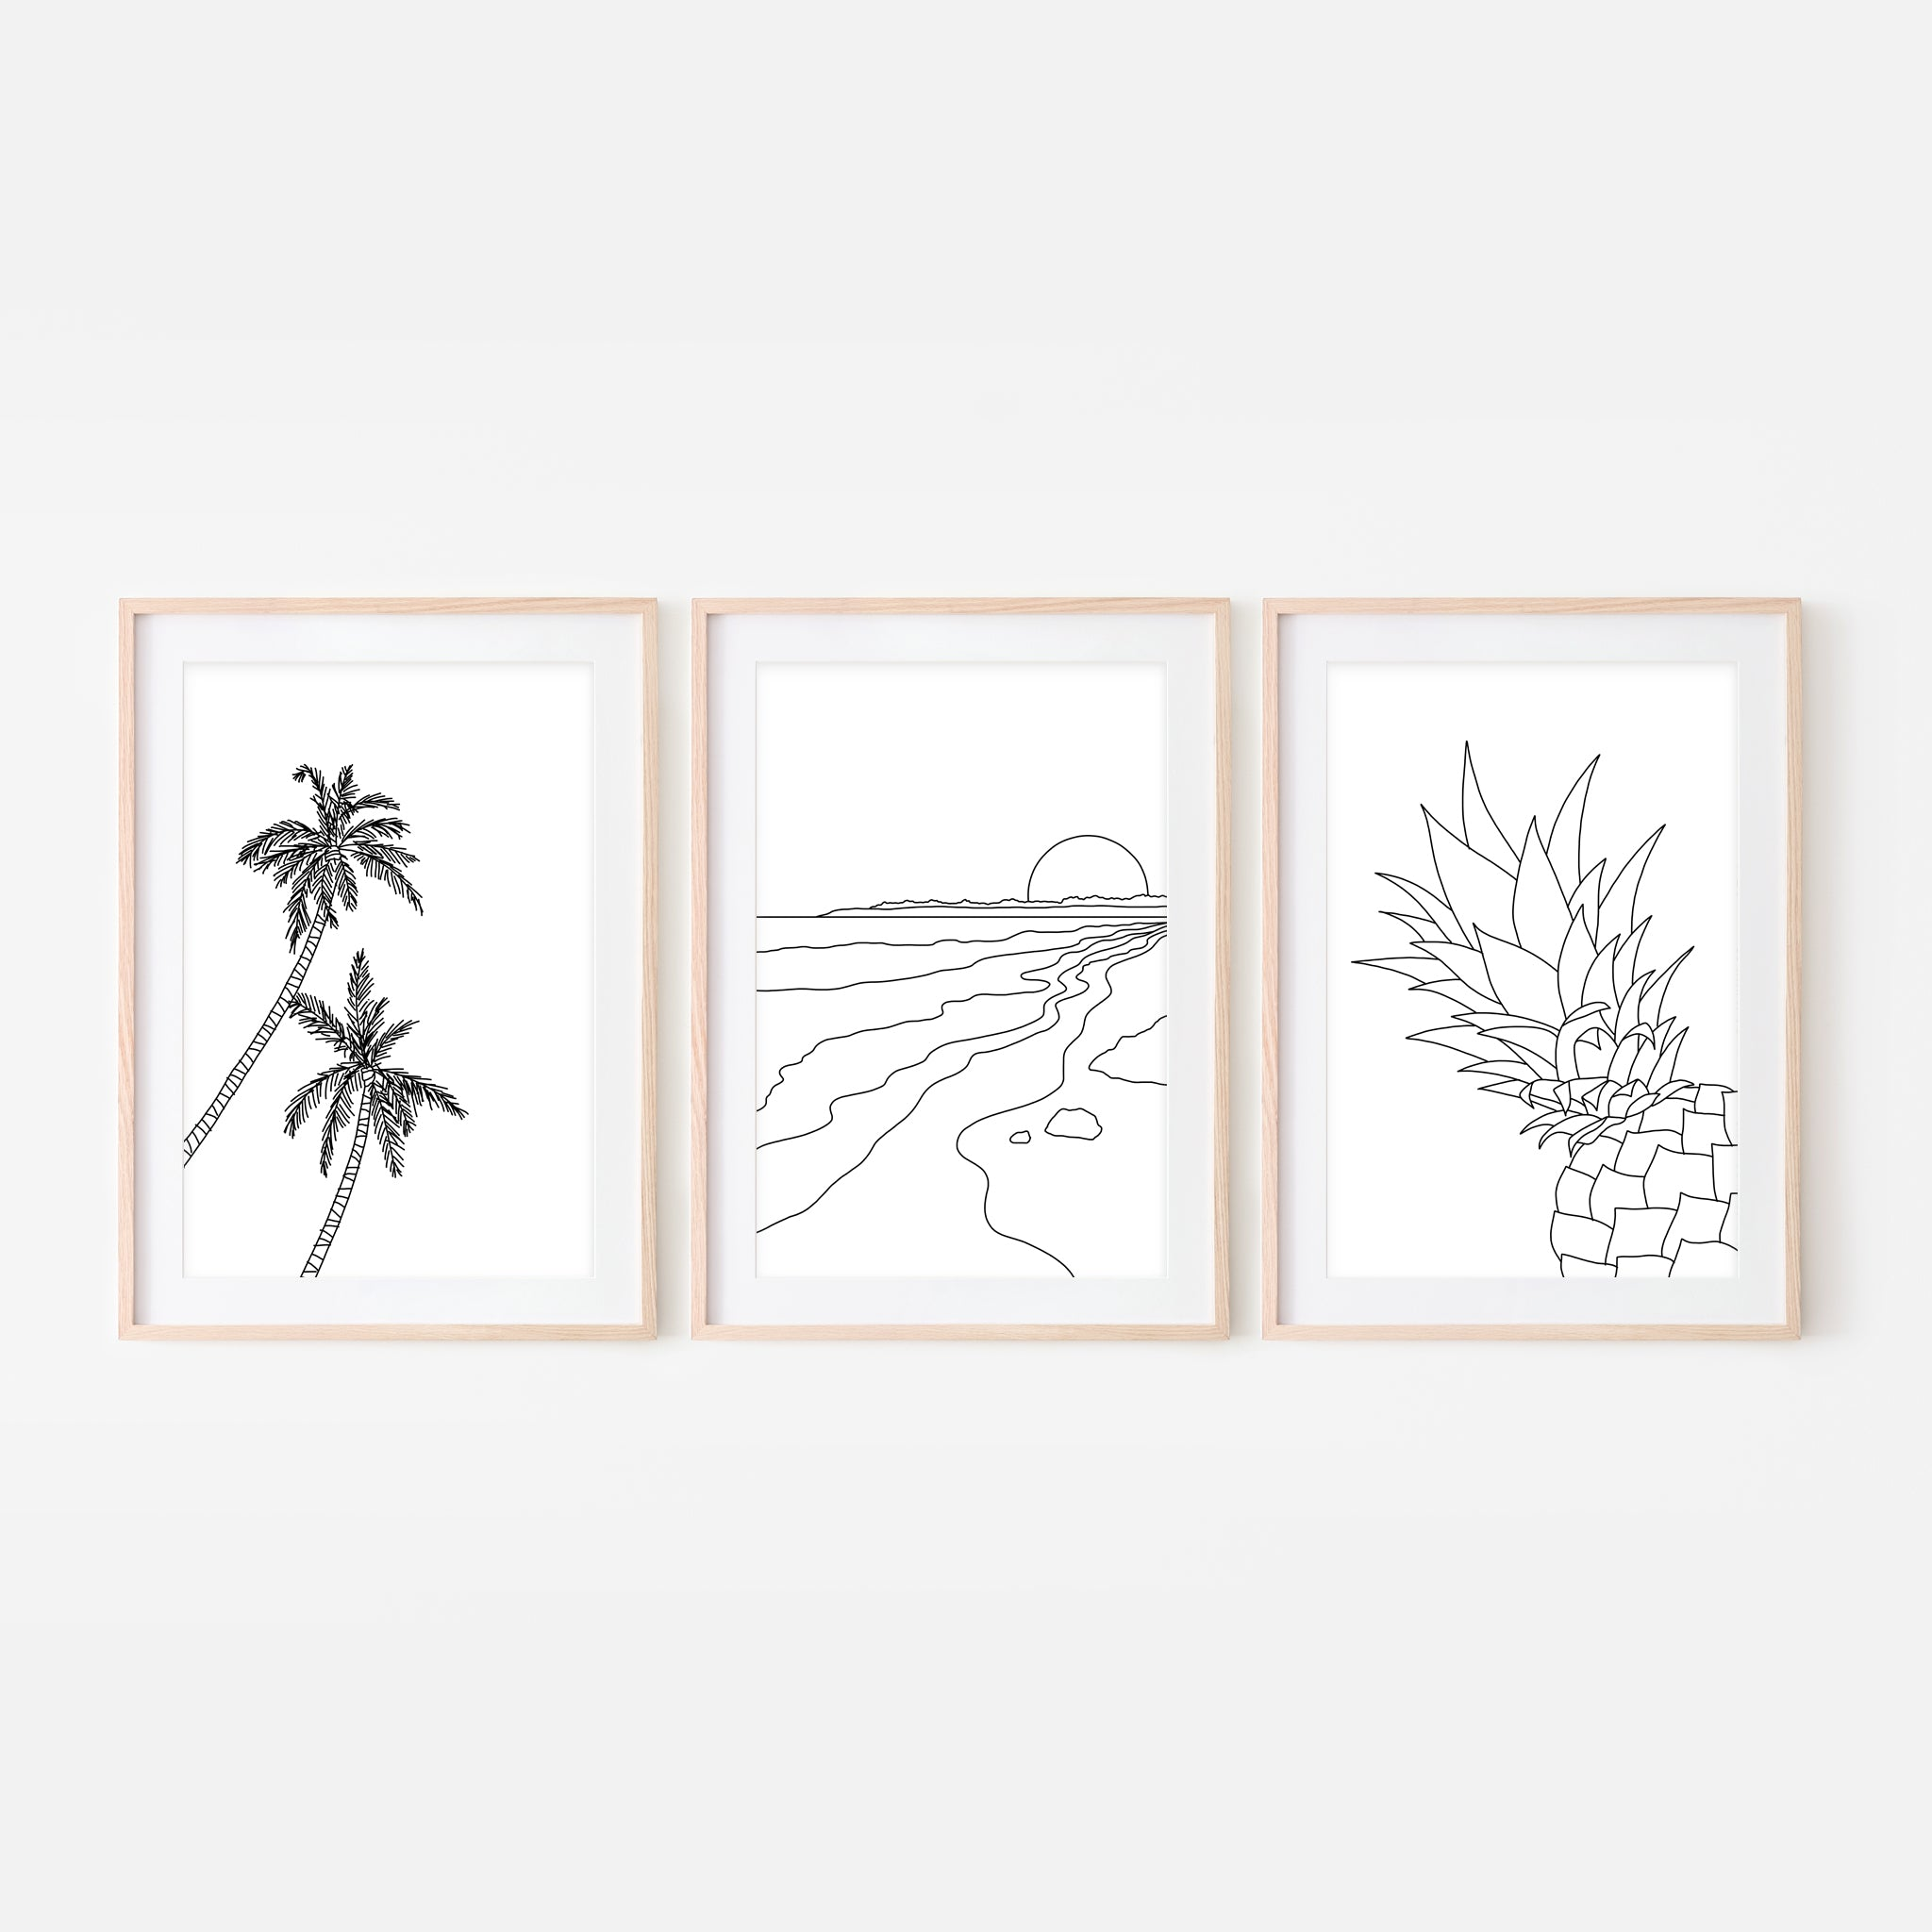 Set of 3 Beach Wall Art - Palm Tree Sunset Pineapple - Black and White Line Art Drawing - Print, Poster or Printable Download - Home Decor